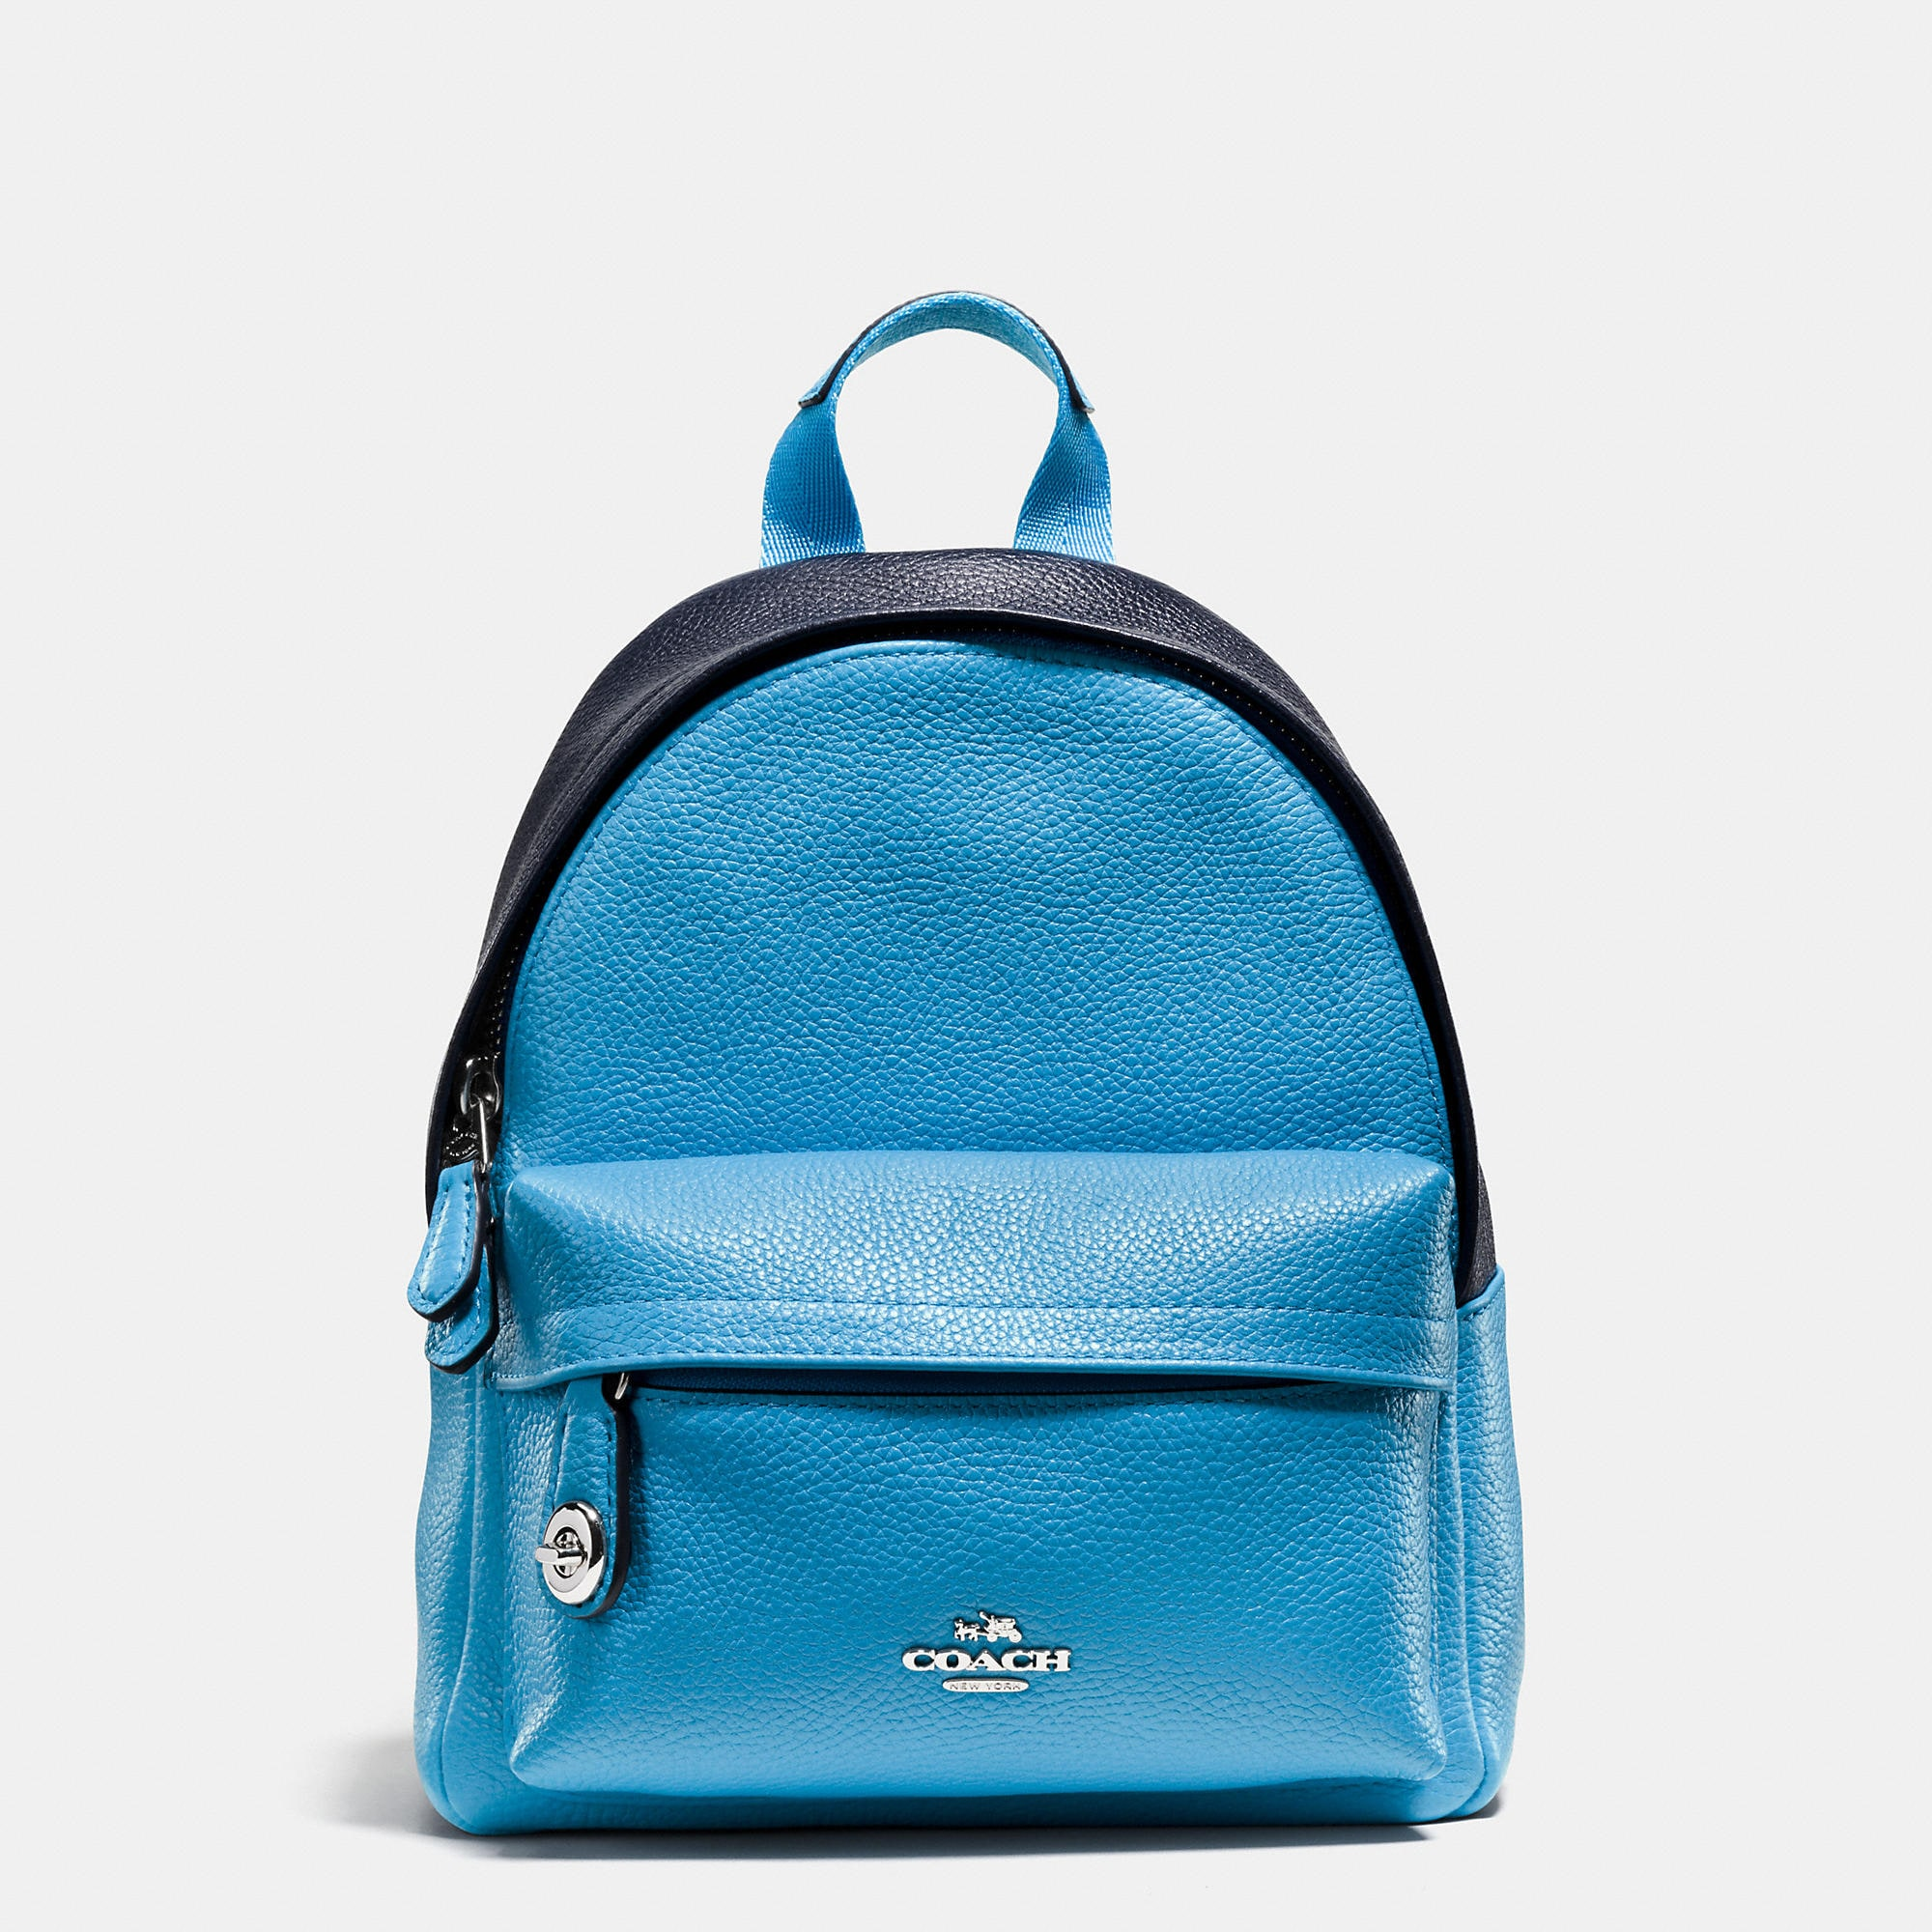 Coach Mini Campus Backpack In Bicolor Leather